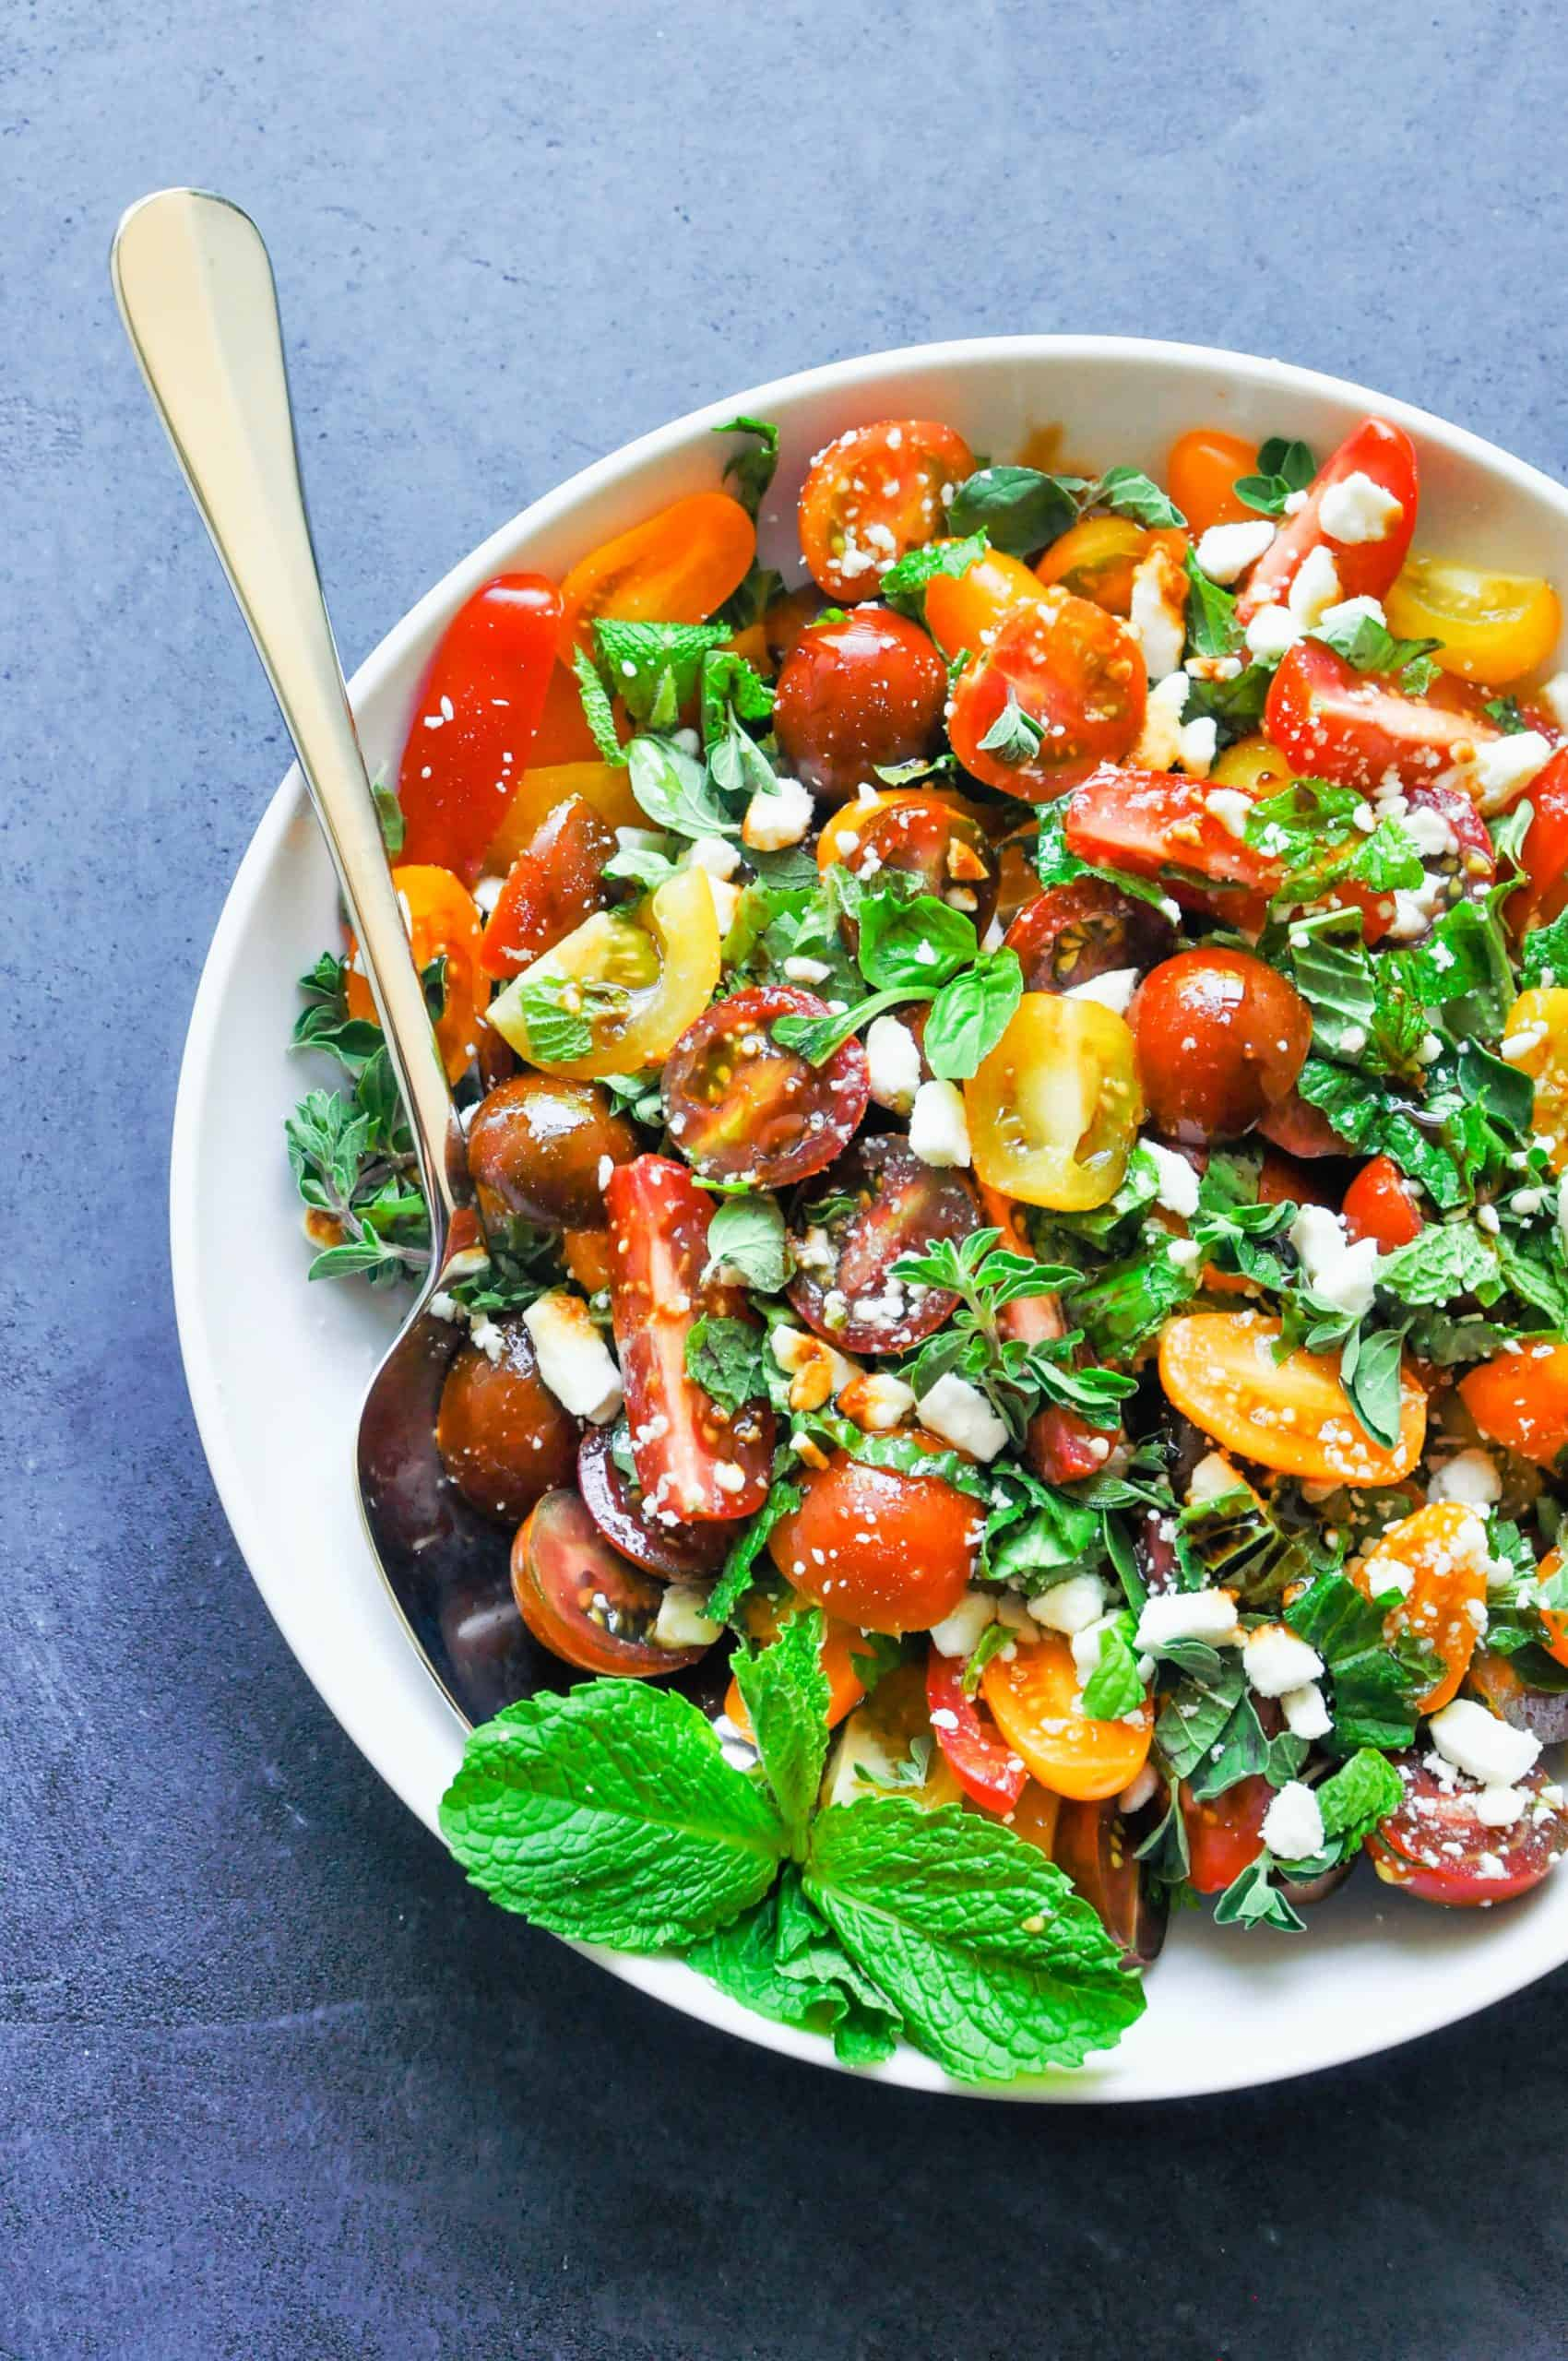 tomato and herb salad in a large serving bowl